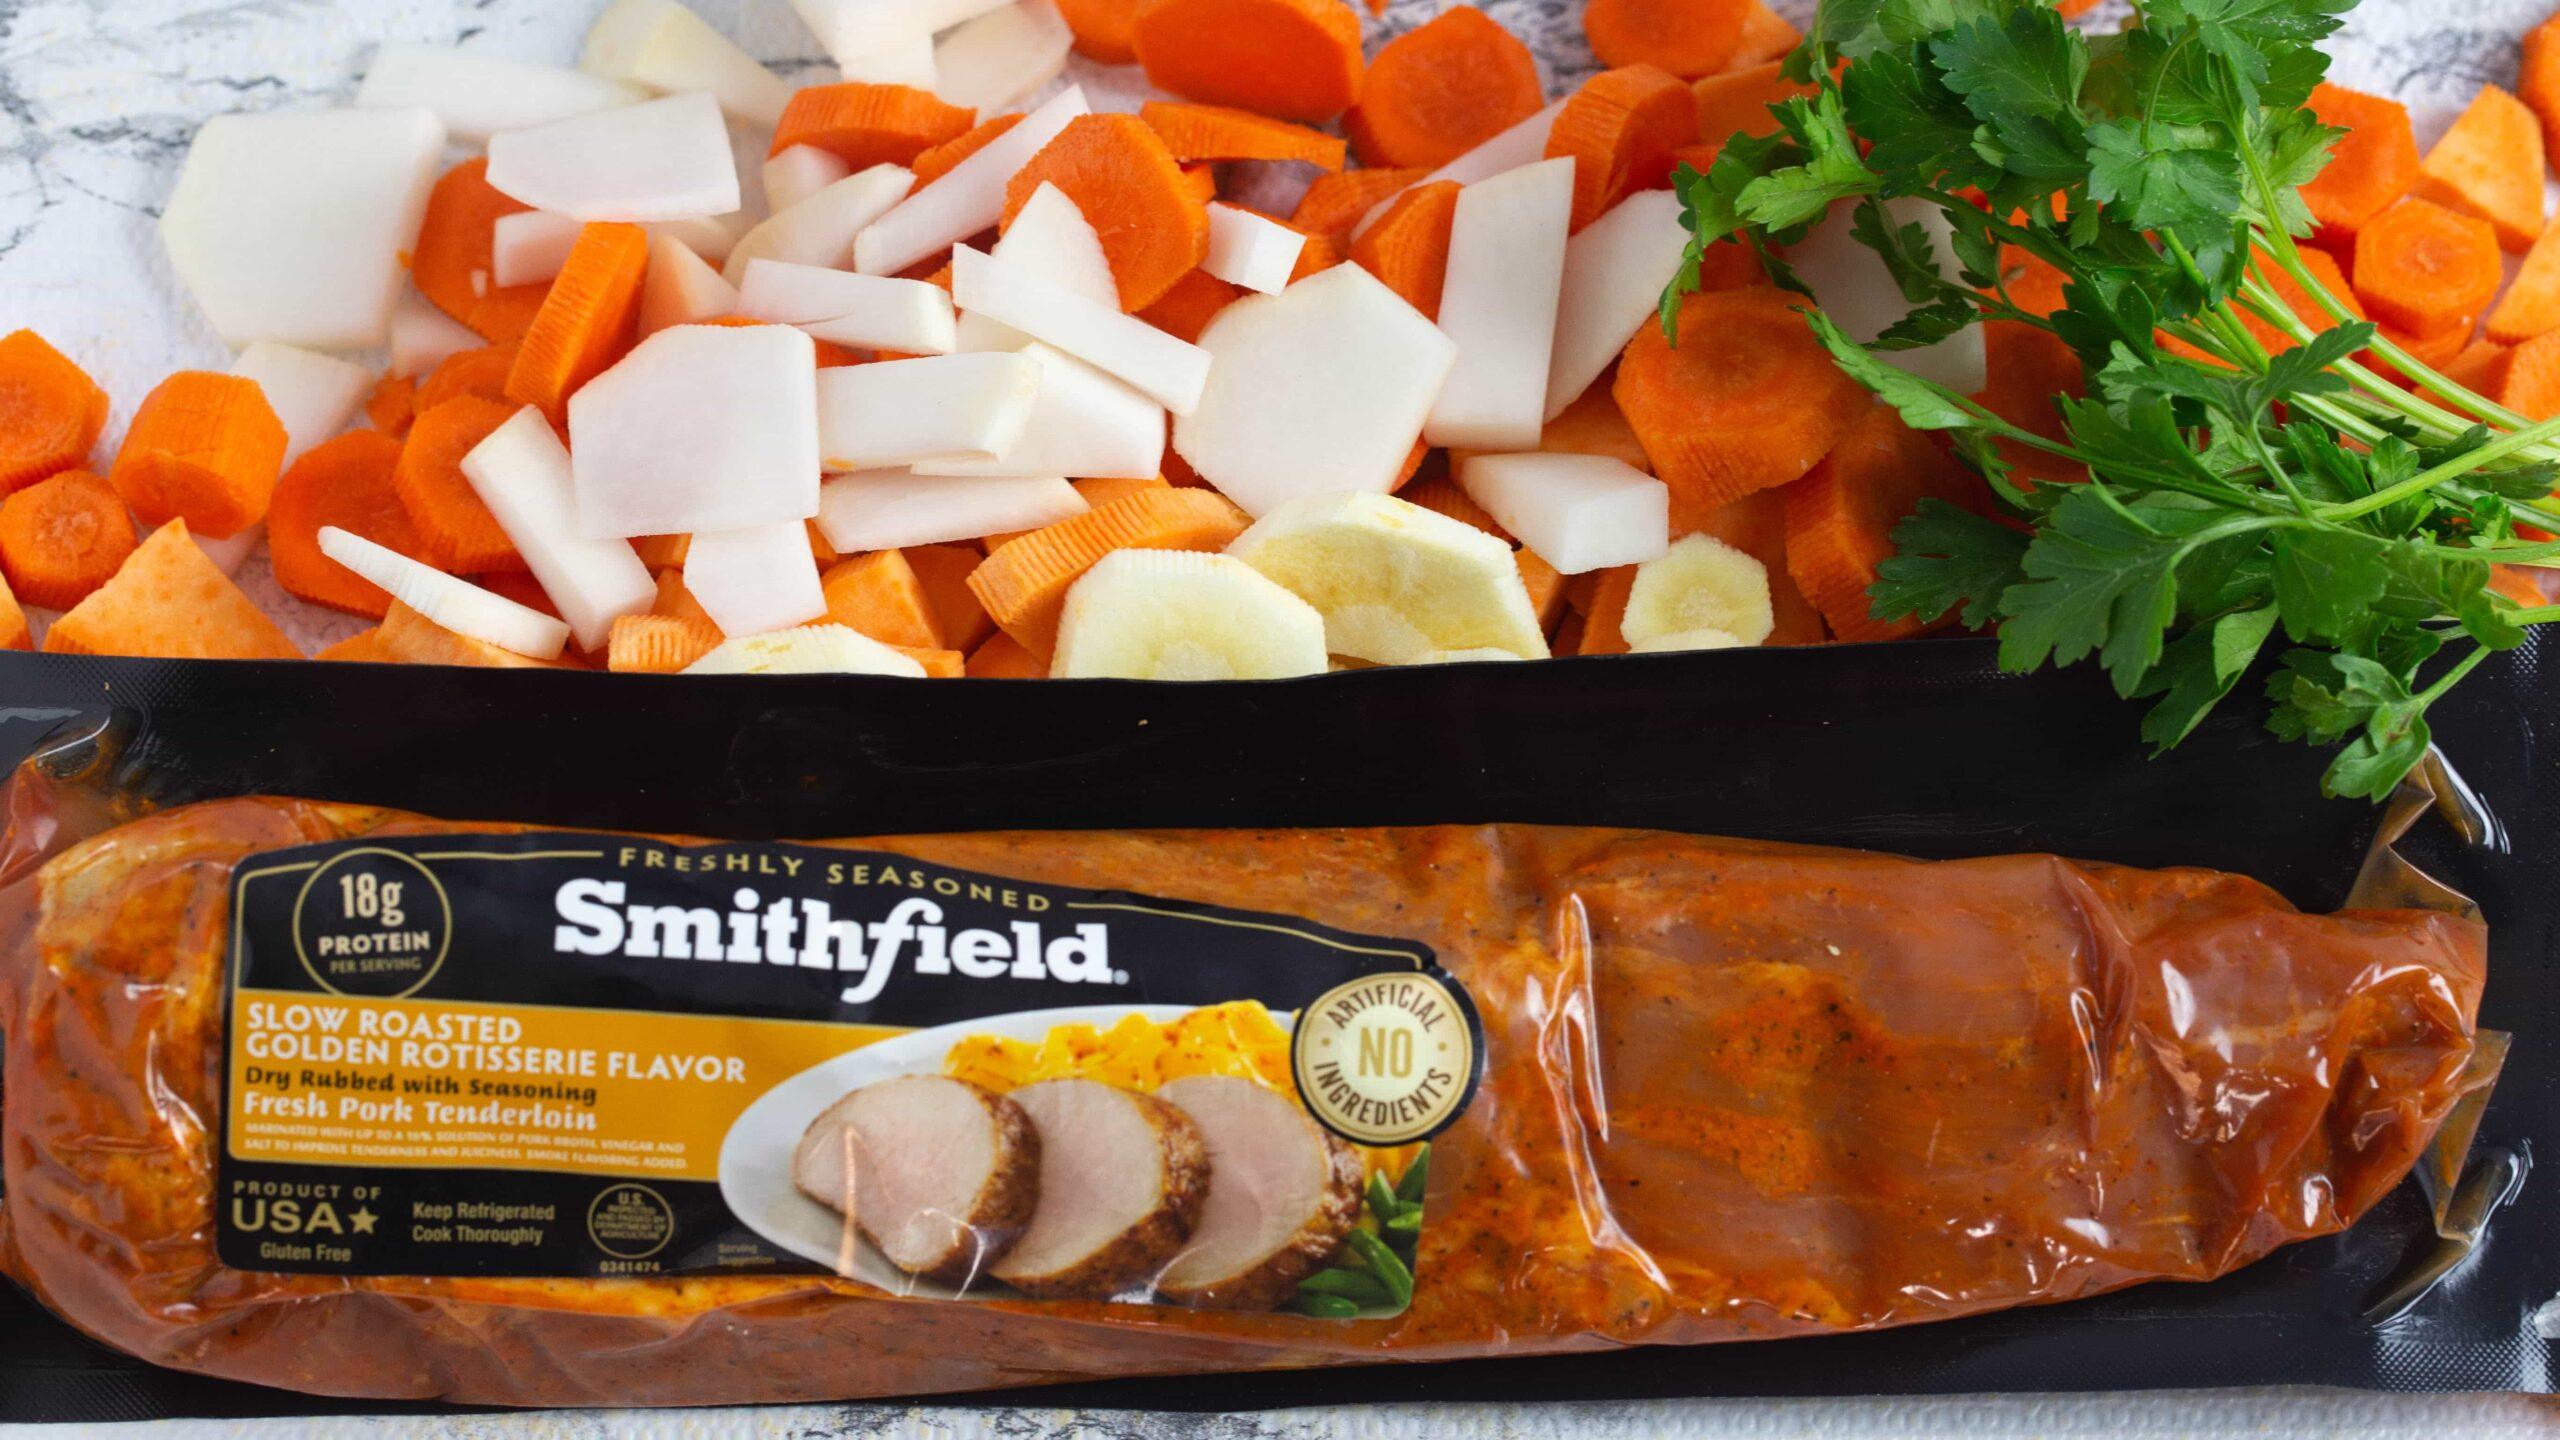 Smithfield marinated pork tenderloin with root veggies including sliced parsnips and carrots getting ready for to be pressure cooked.